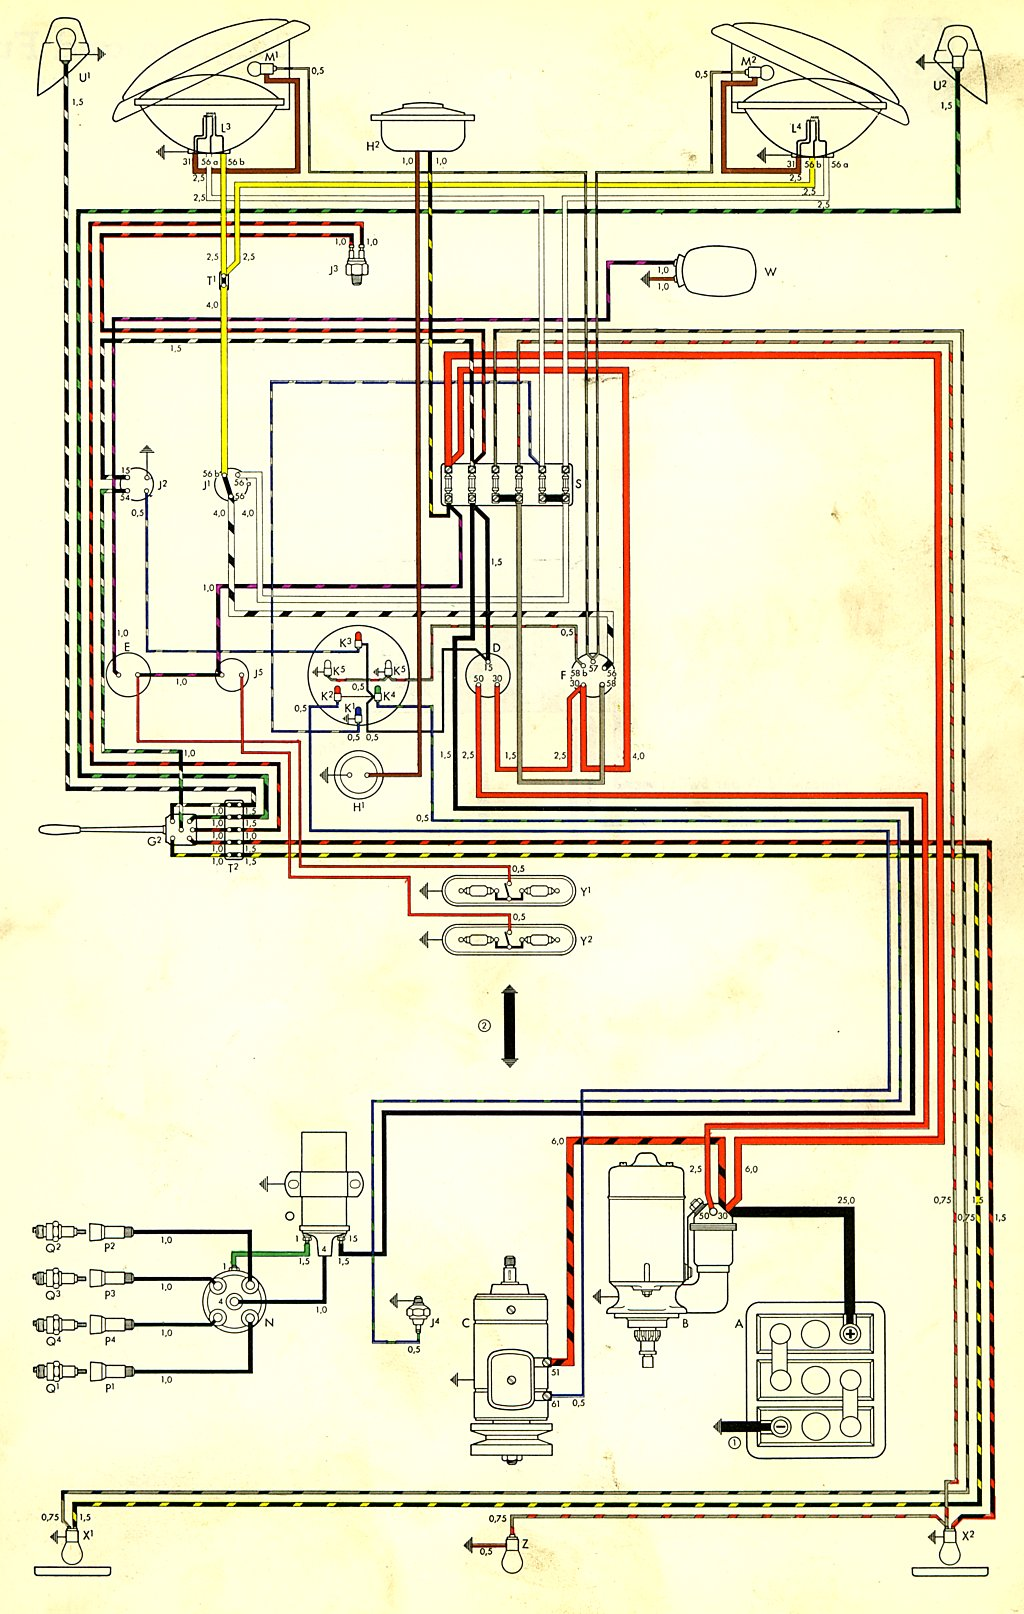 vw 1600 engine wiring diagram wiring diagrams and schematics vw super beetle wiring schematics image about